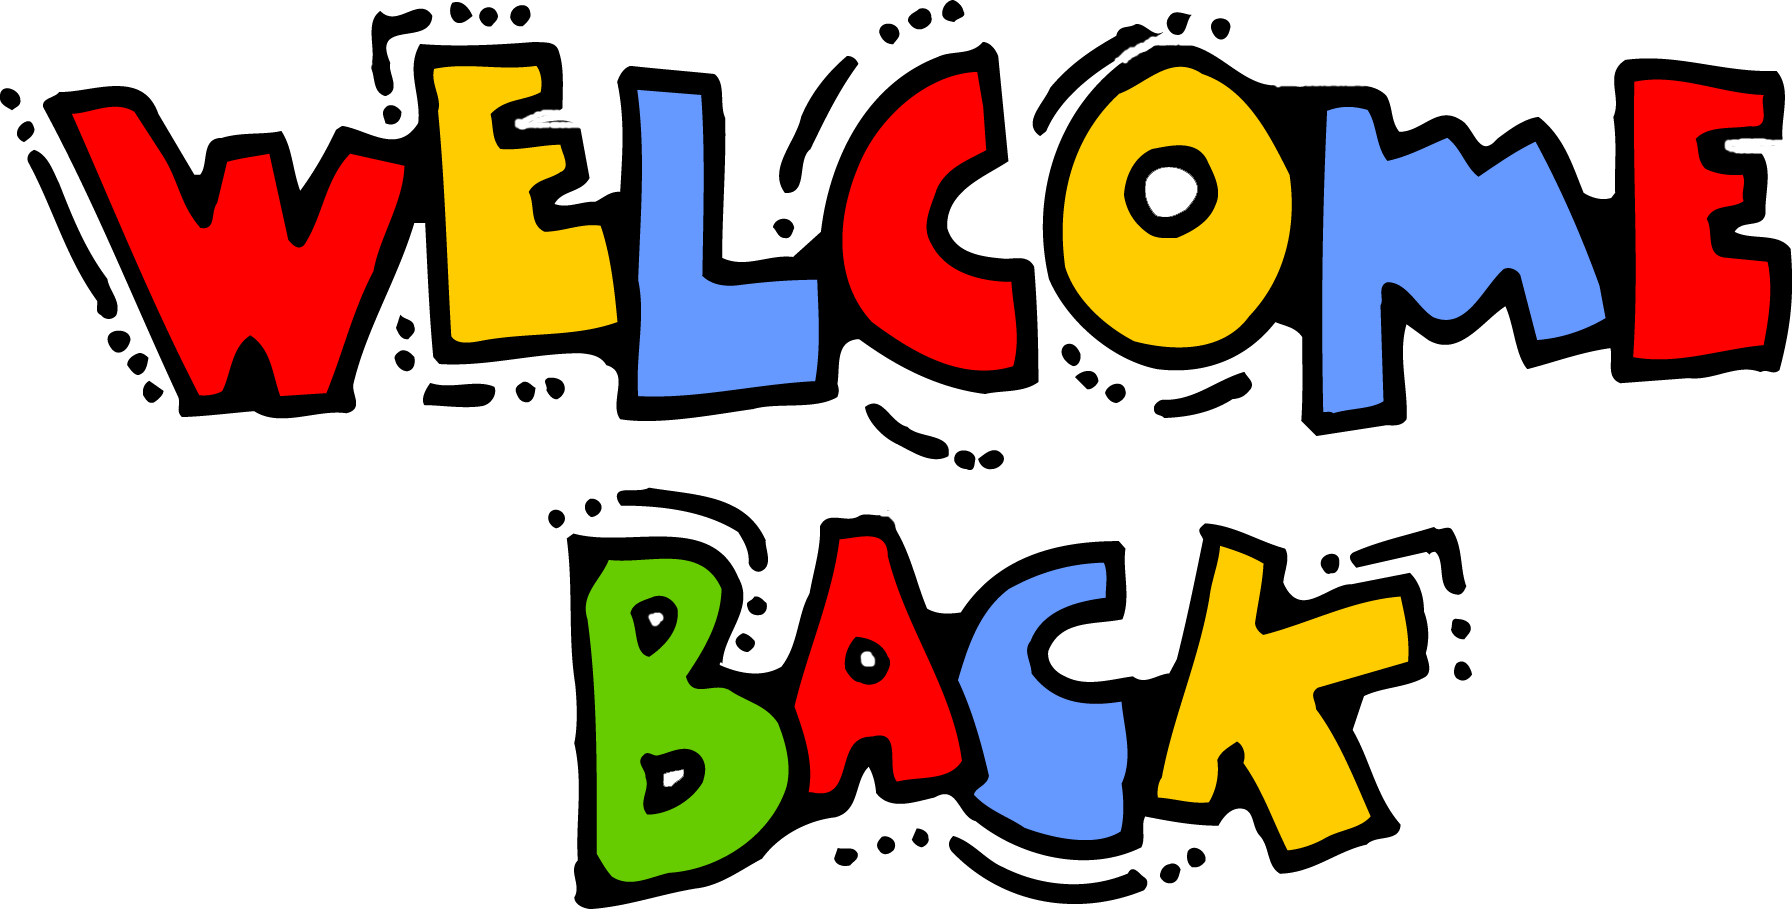 Free welcome clipart graphics animated